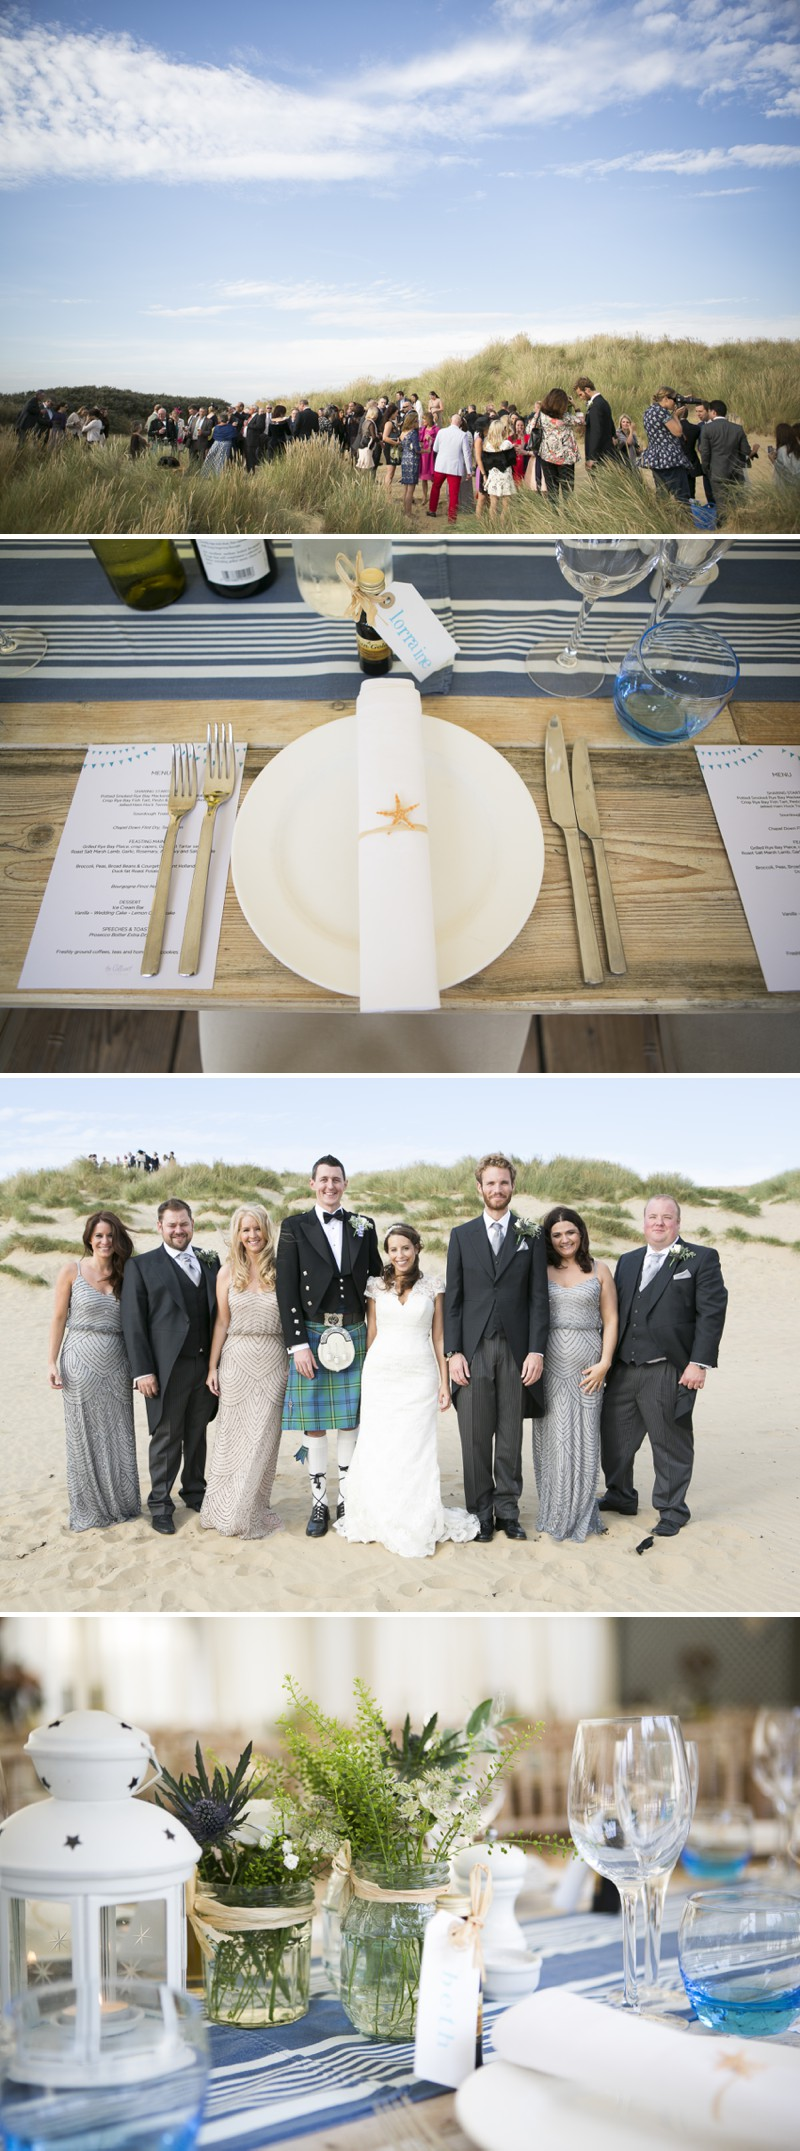 A British Beachside Wedding At The Gallivant Hotel On Camber Sands With The Suzanne Neville Captivating Dress And Sequin Bridesmaid Dresses Photographed By David Long._0006